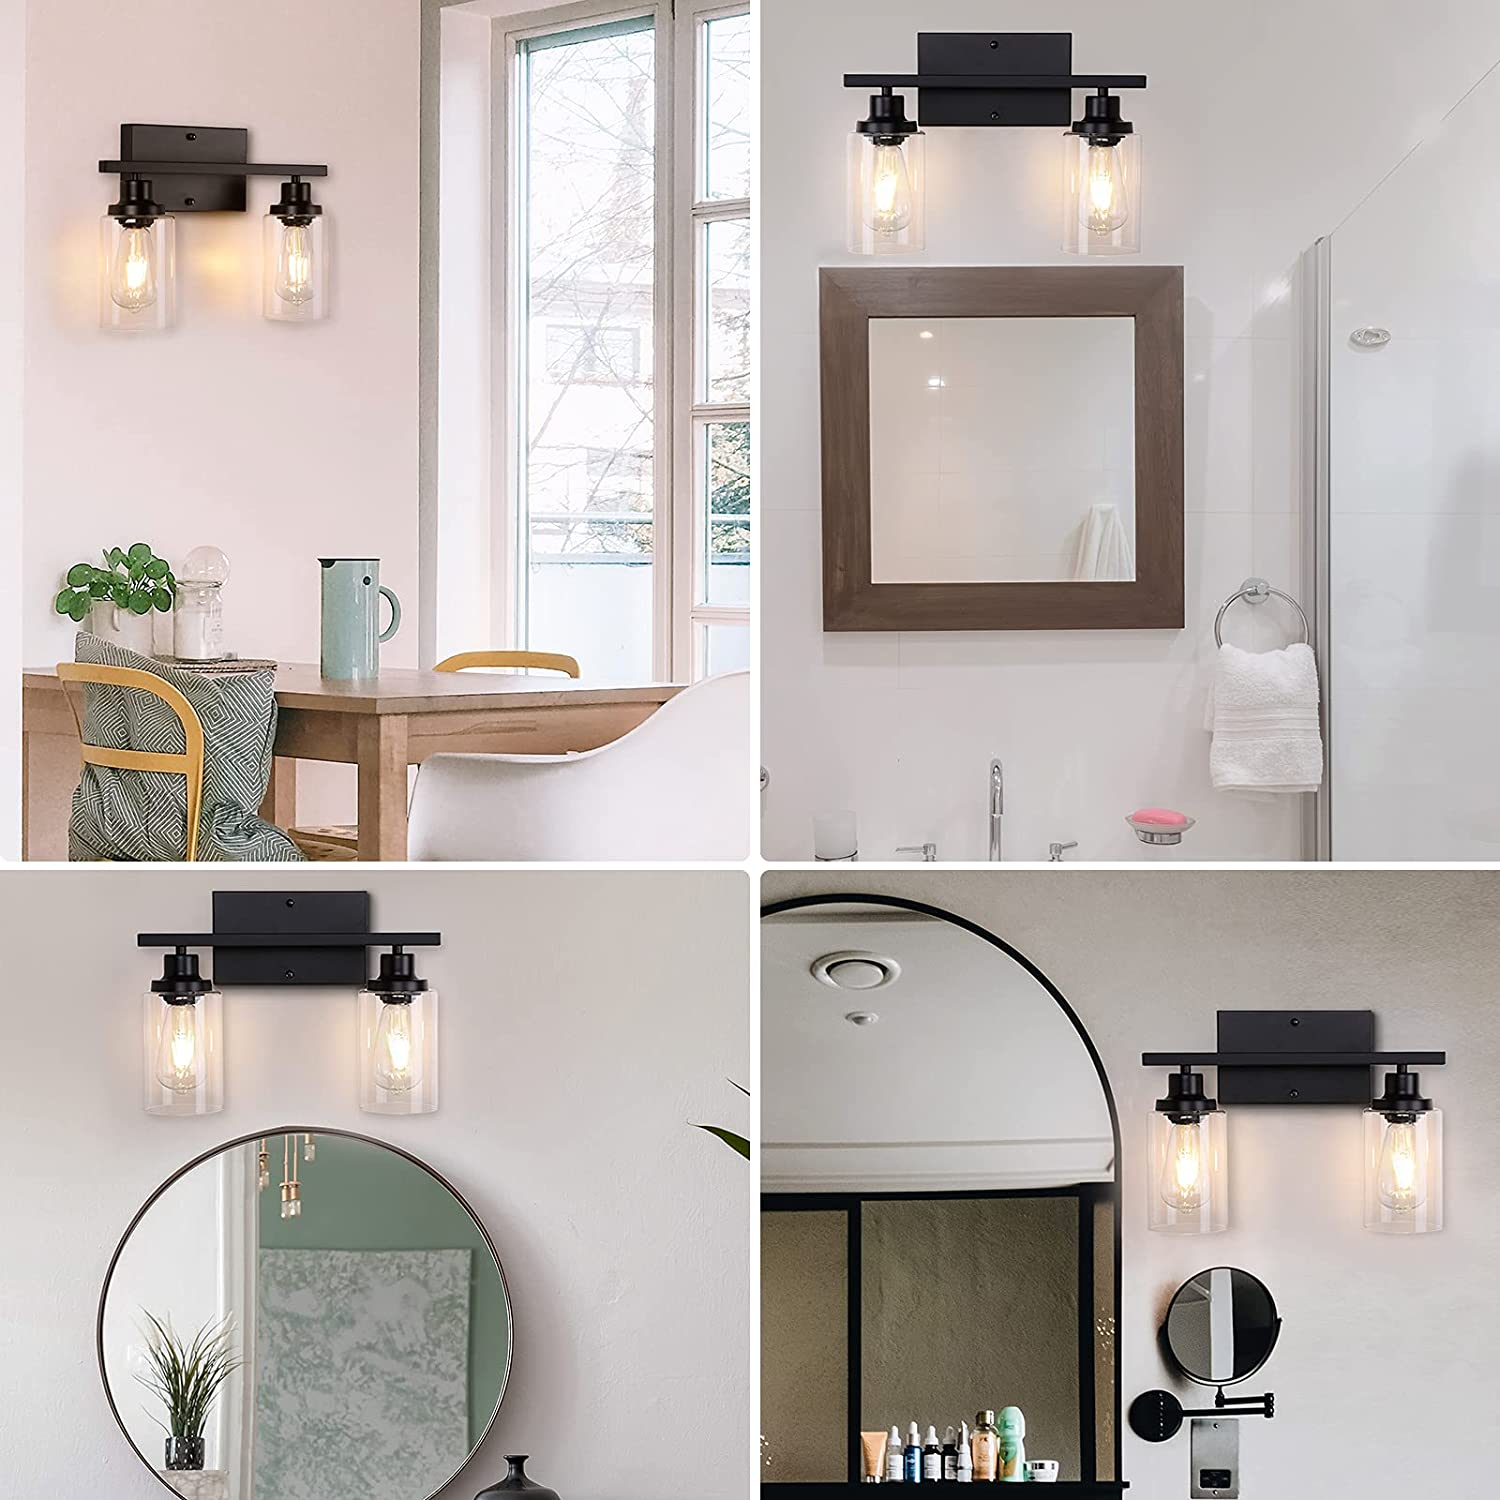 Buy Miduxiy Black Bathroom Vanity Lights 2 Light Matte Black Bathroom Lighting Fixtures Over Mirror Industrial Vintage Wall Sconce Wall Lamp With Thickened Glass Shade For Bedroom Powder Room Hallway Online In Germany